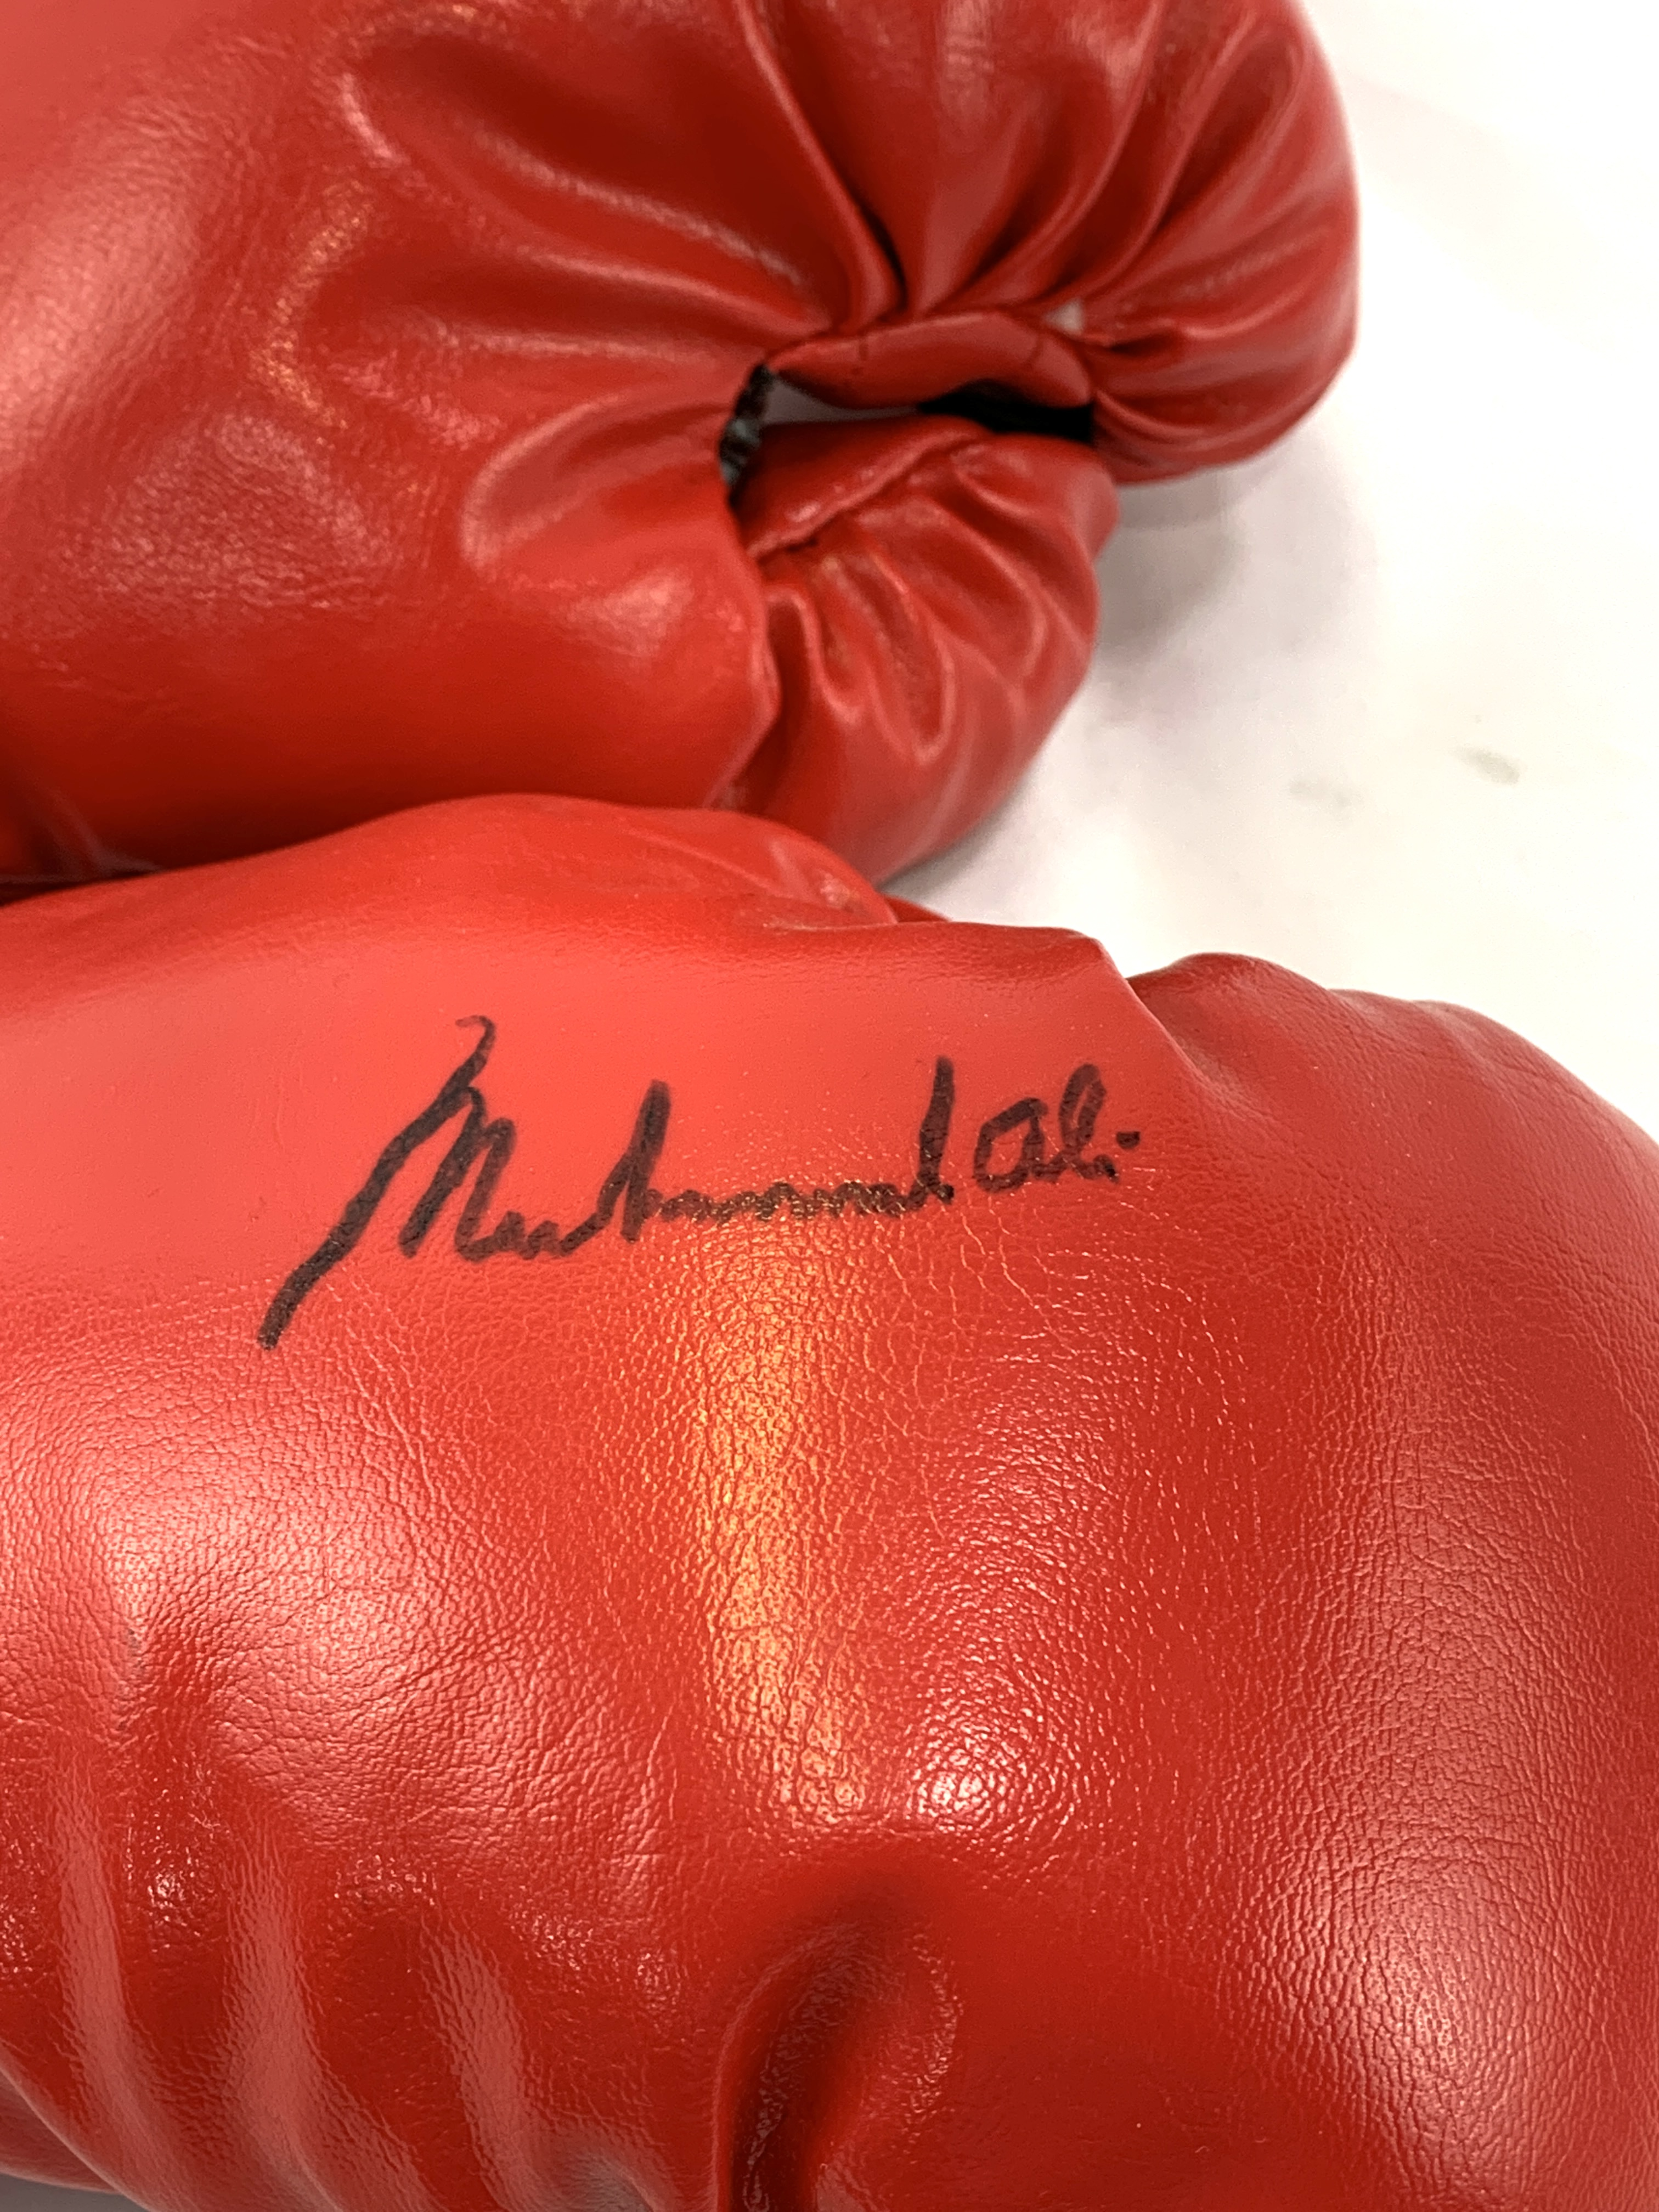 Pair of red Everlast boxing gloves, one signed Muhammad Ali - Image 2 of 2